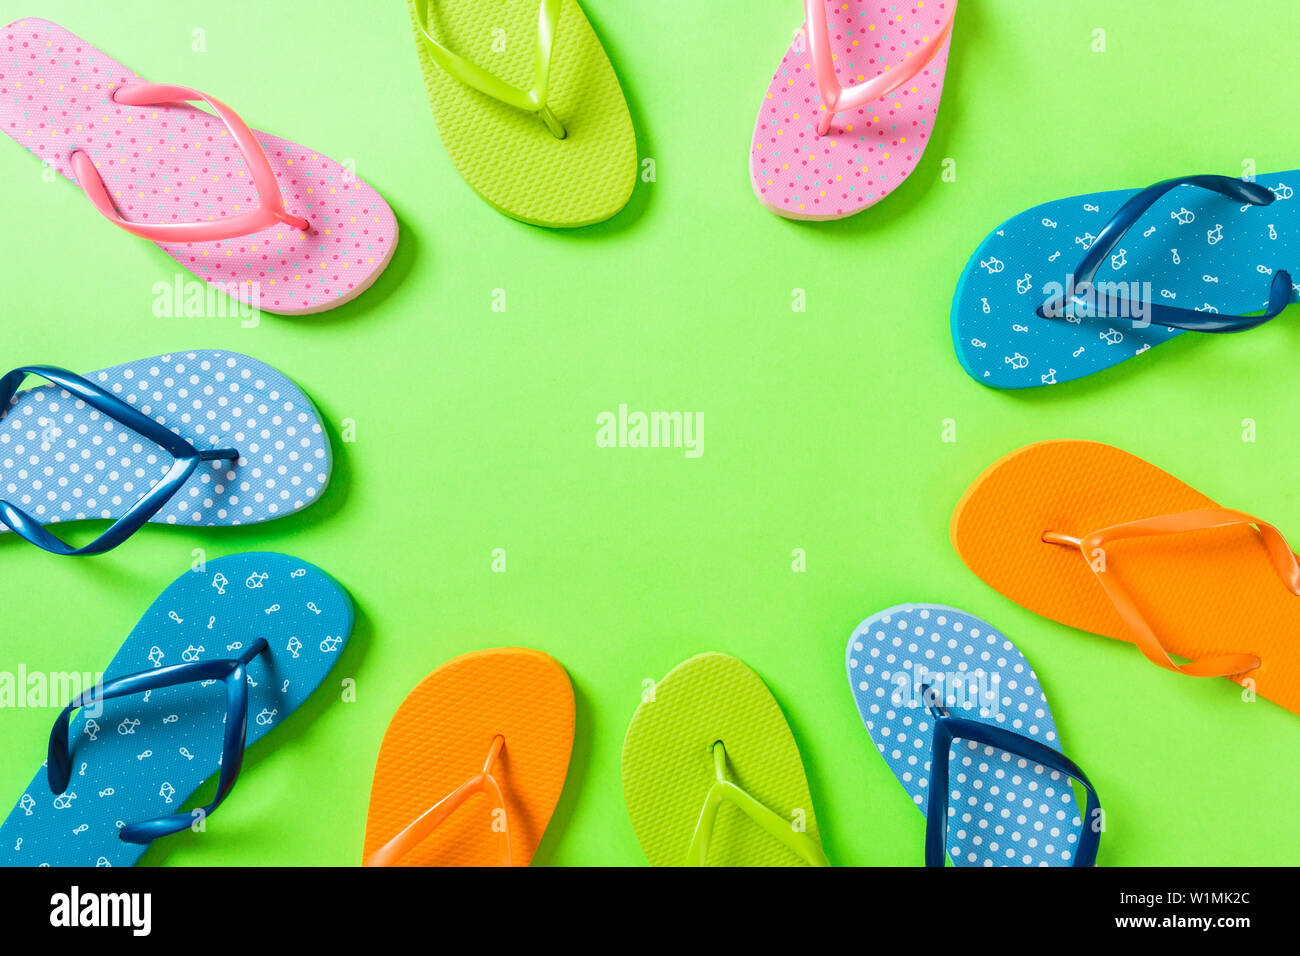 a lot of flip flop colored sandals, summer vacation on colored background, copy space top view. - Stock Image